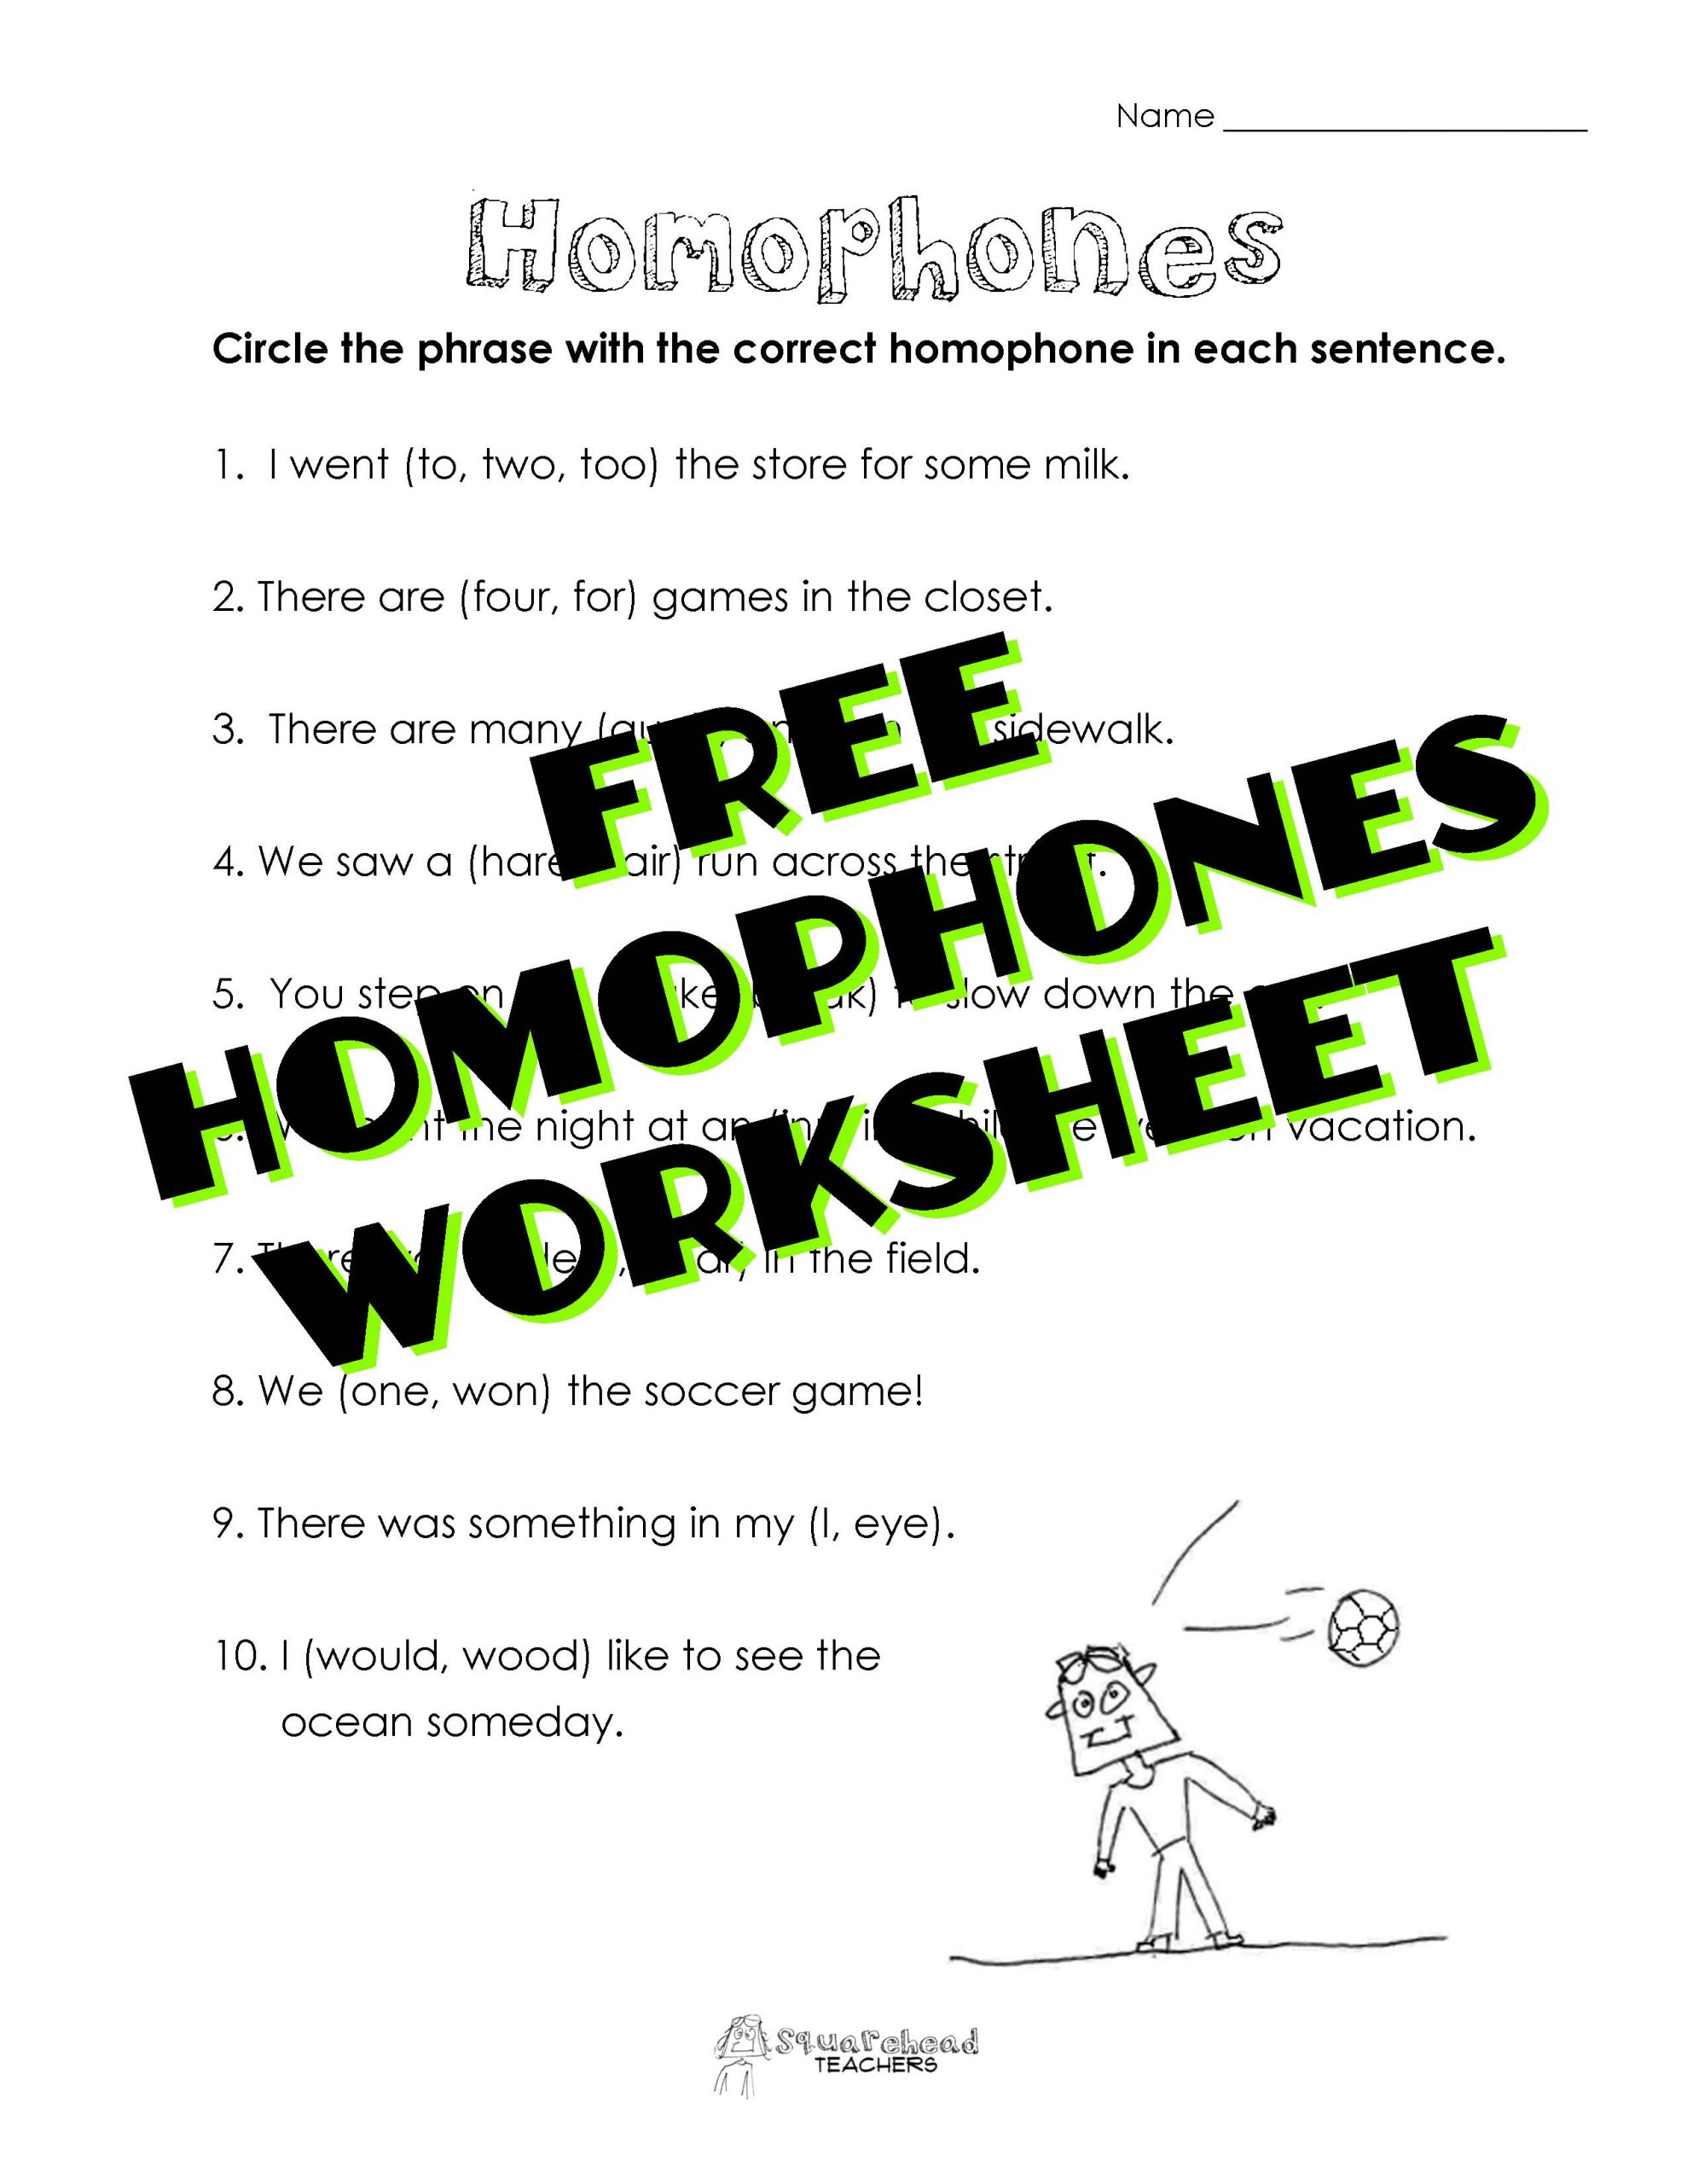 Homophone Worksheet 4th Grade Homophones Worksheet